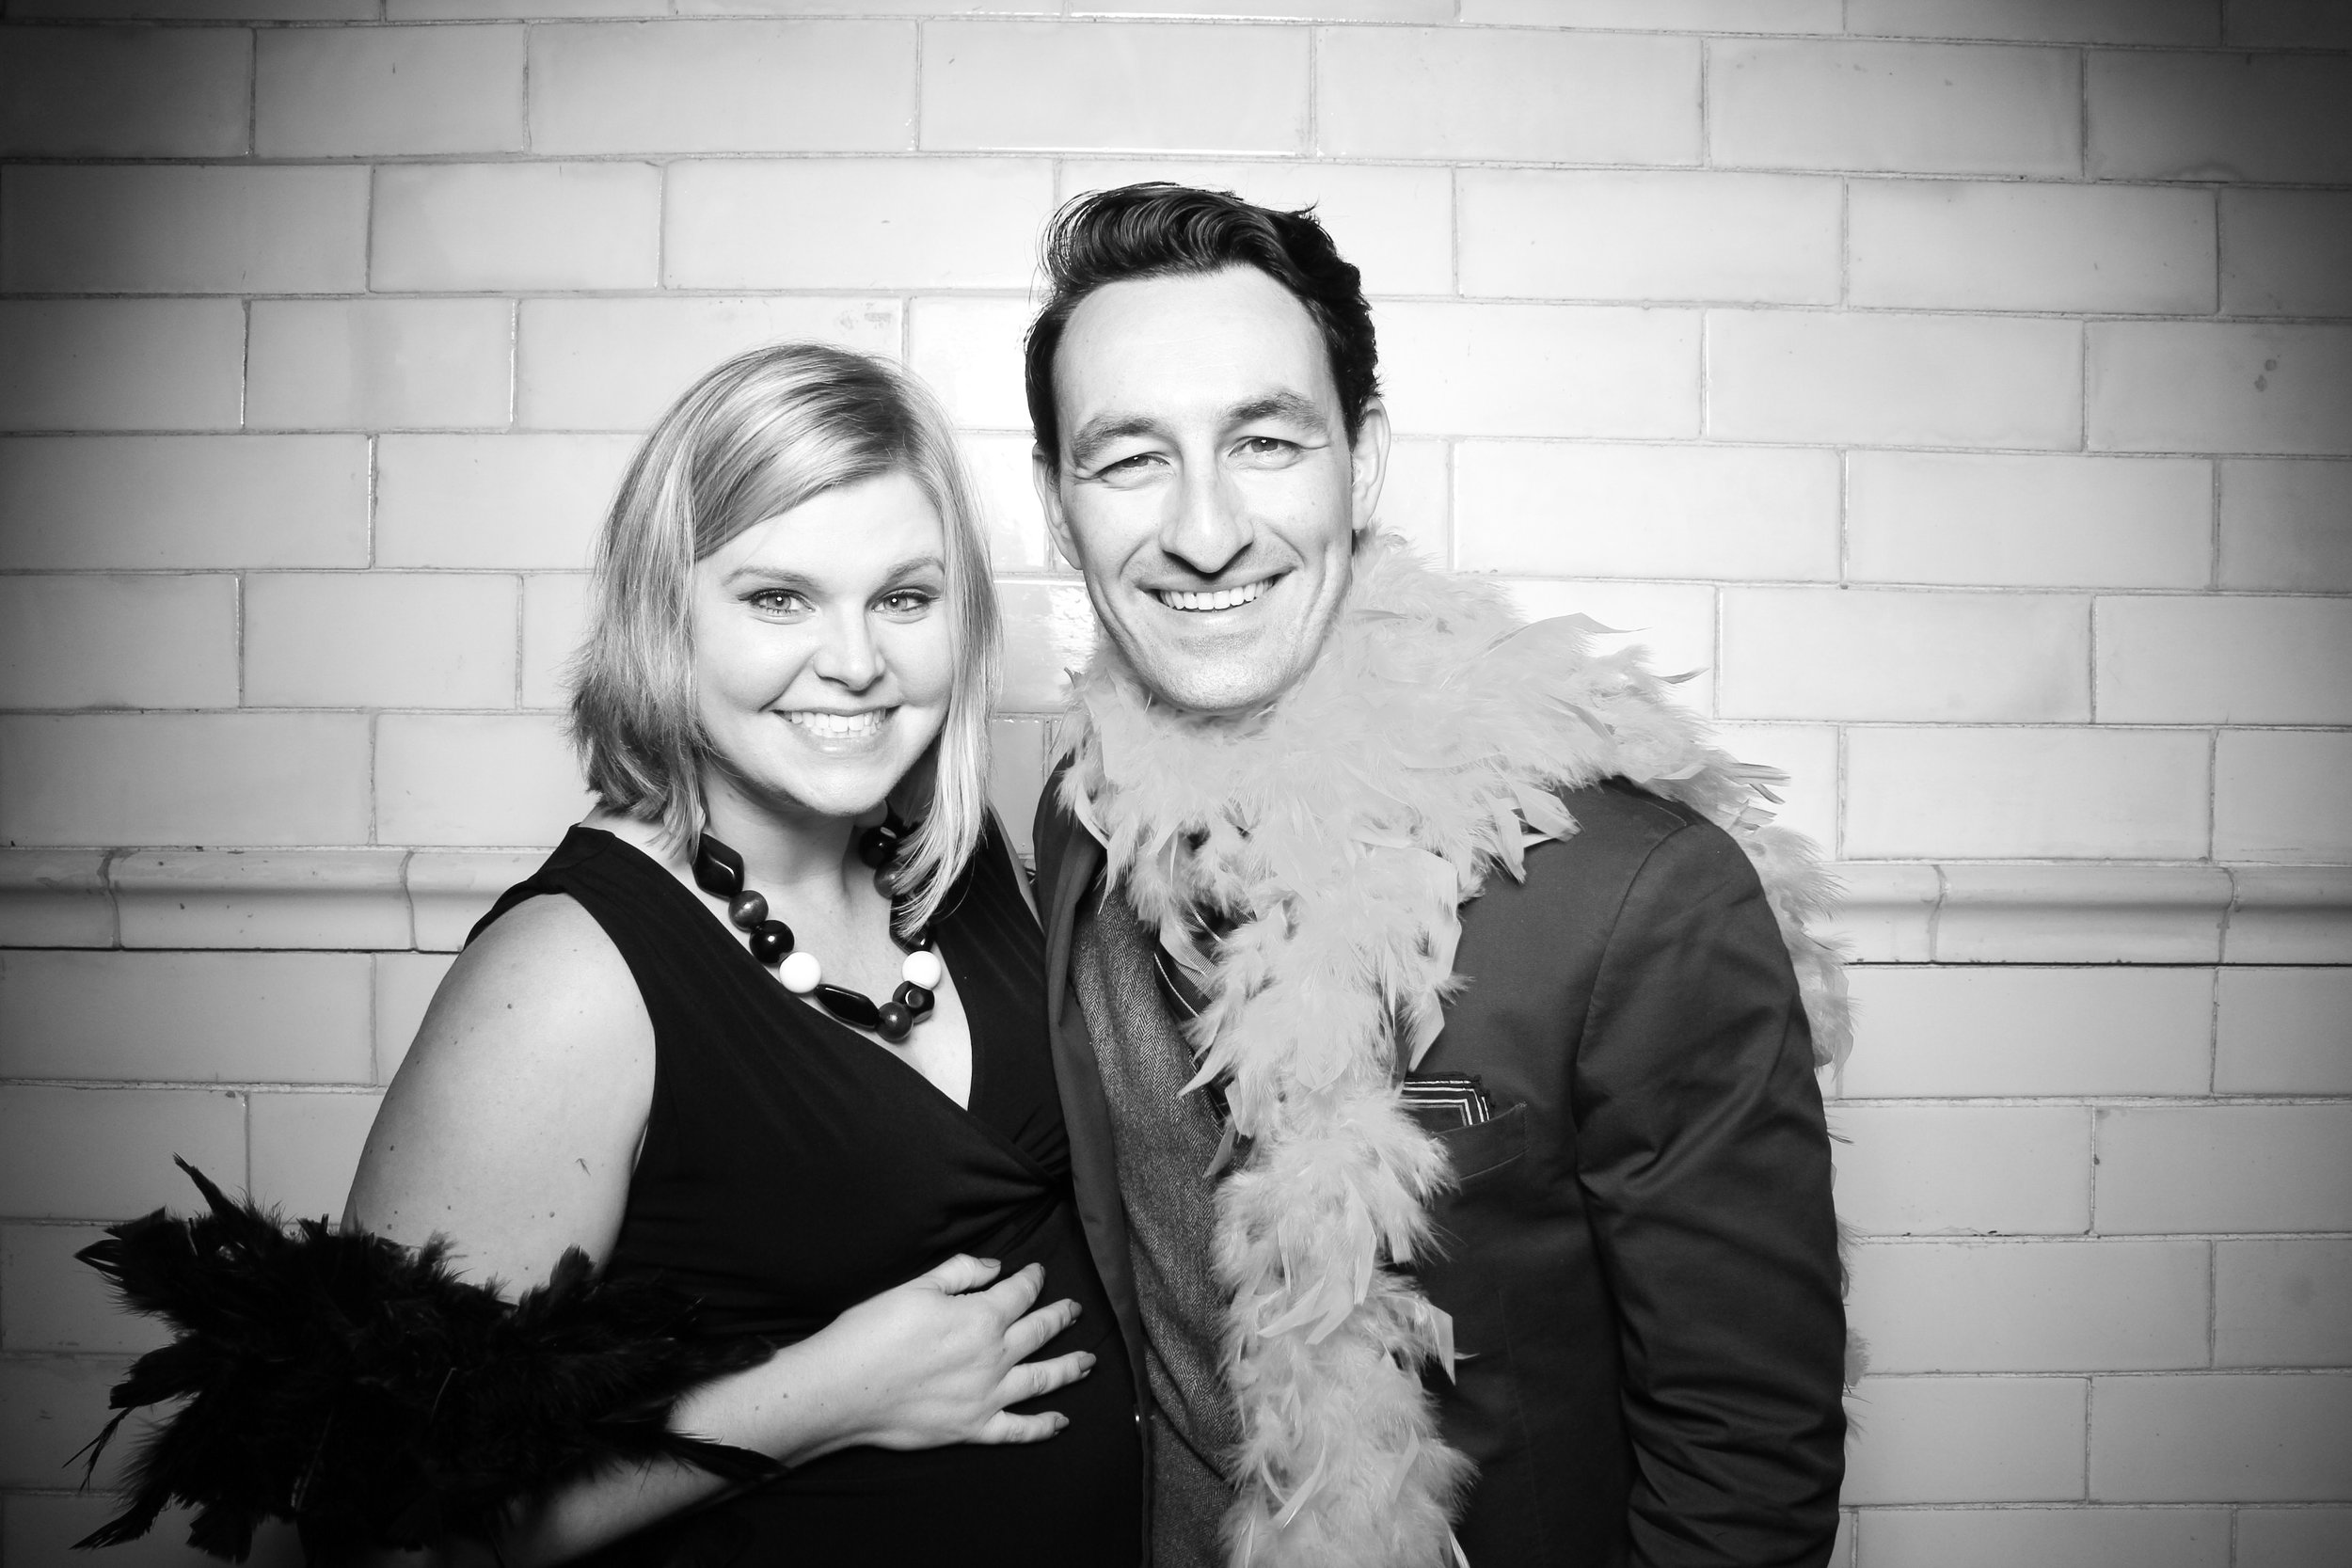 Firehouse_Chicago_Edgewater_Wedding_Reception_Photo_Booth_03.jpg